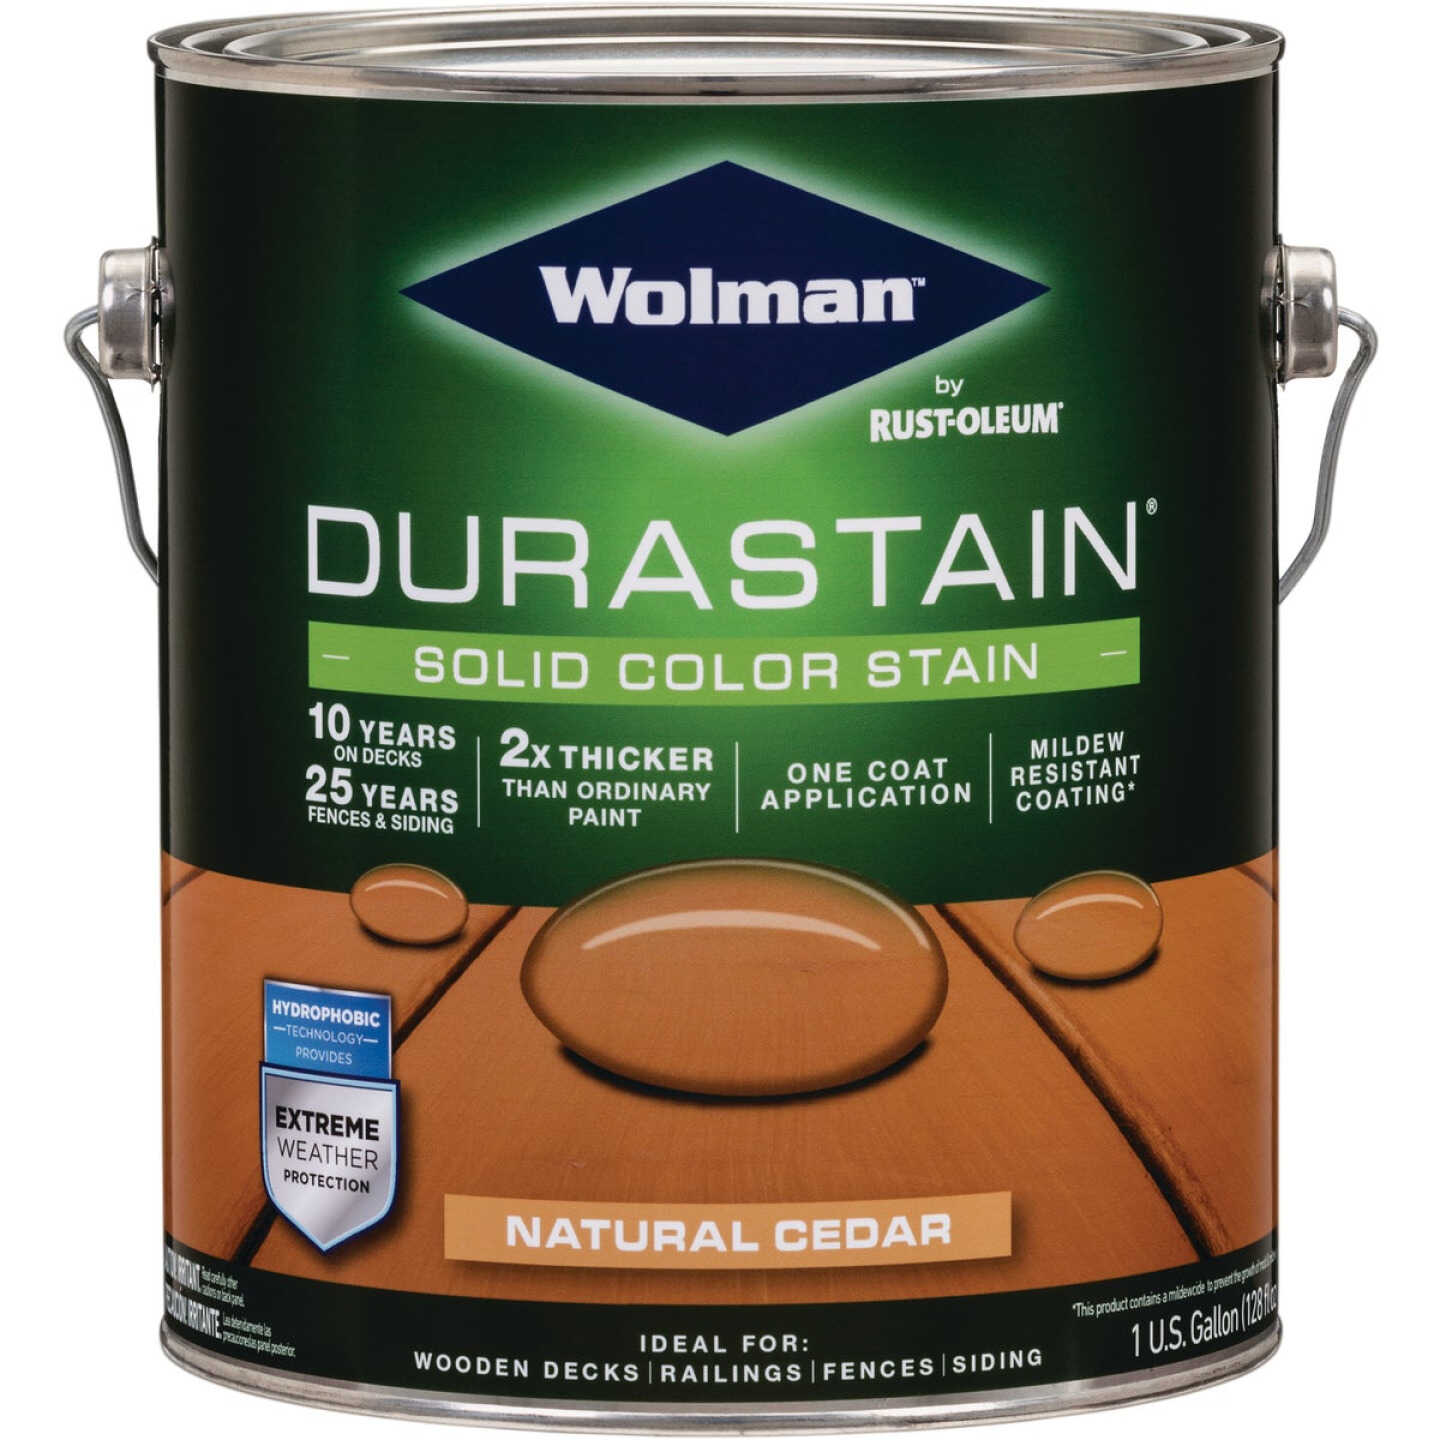 Wolman DuraStain One Coat Solid Color Exterior Stain, Natural Cedar 1 Gal. Image 1